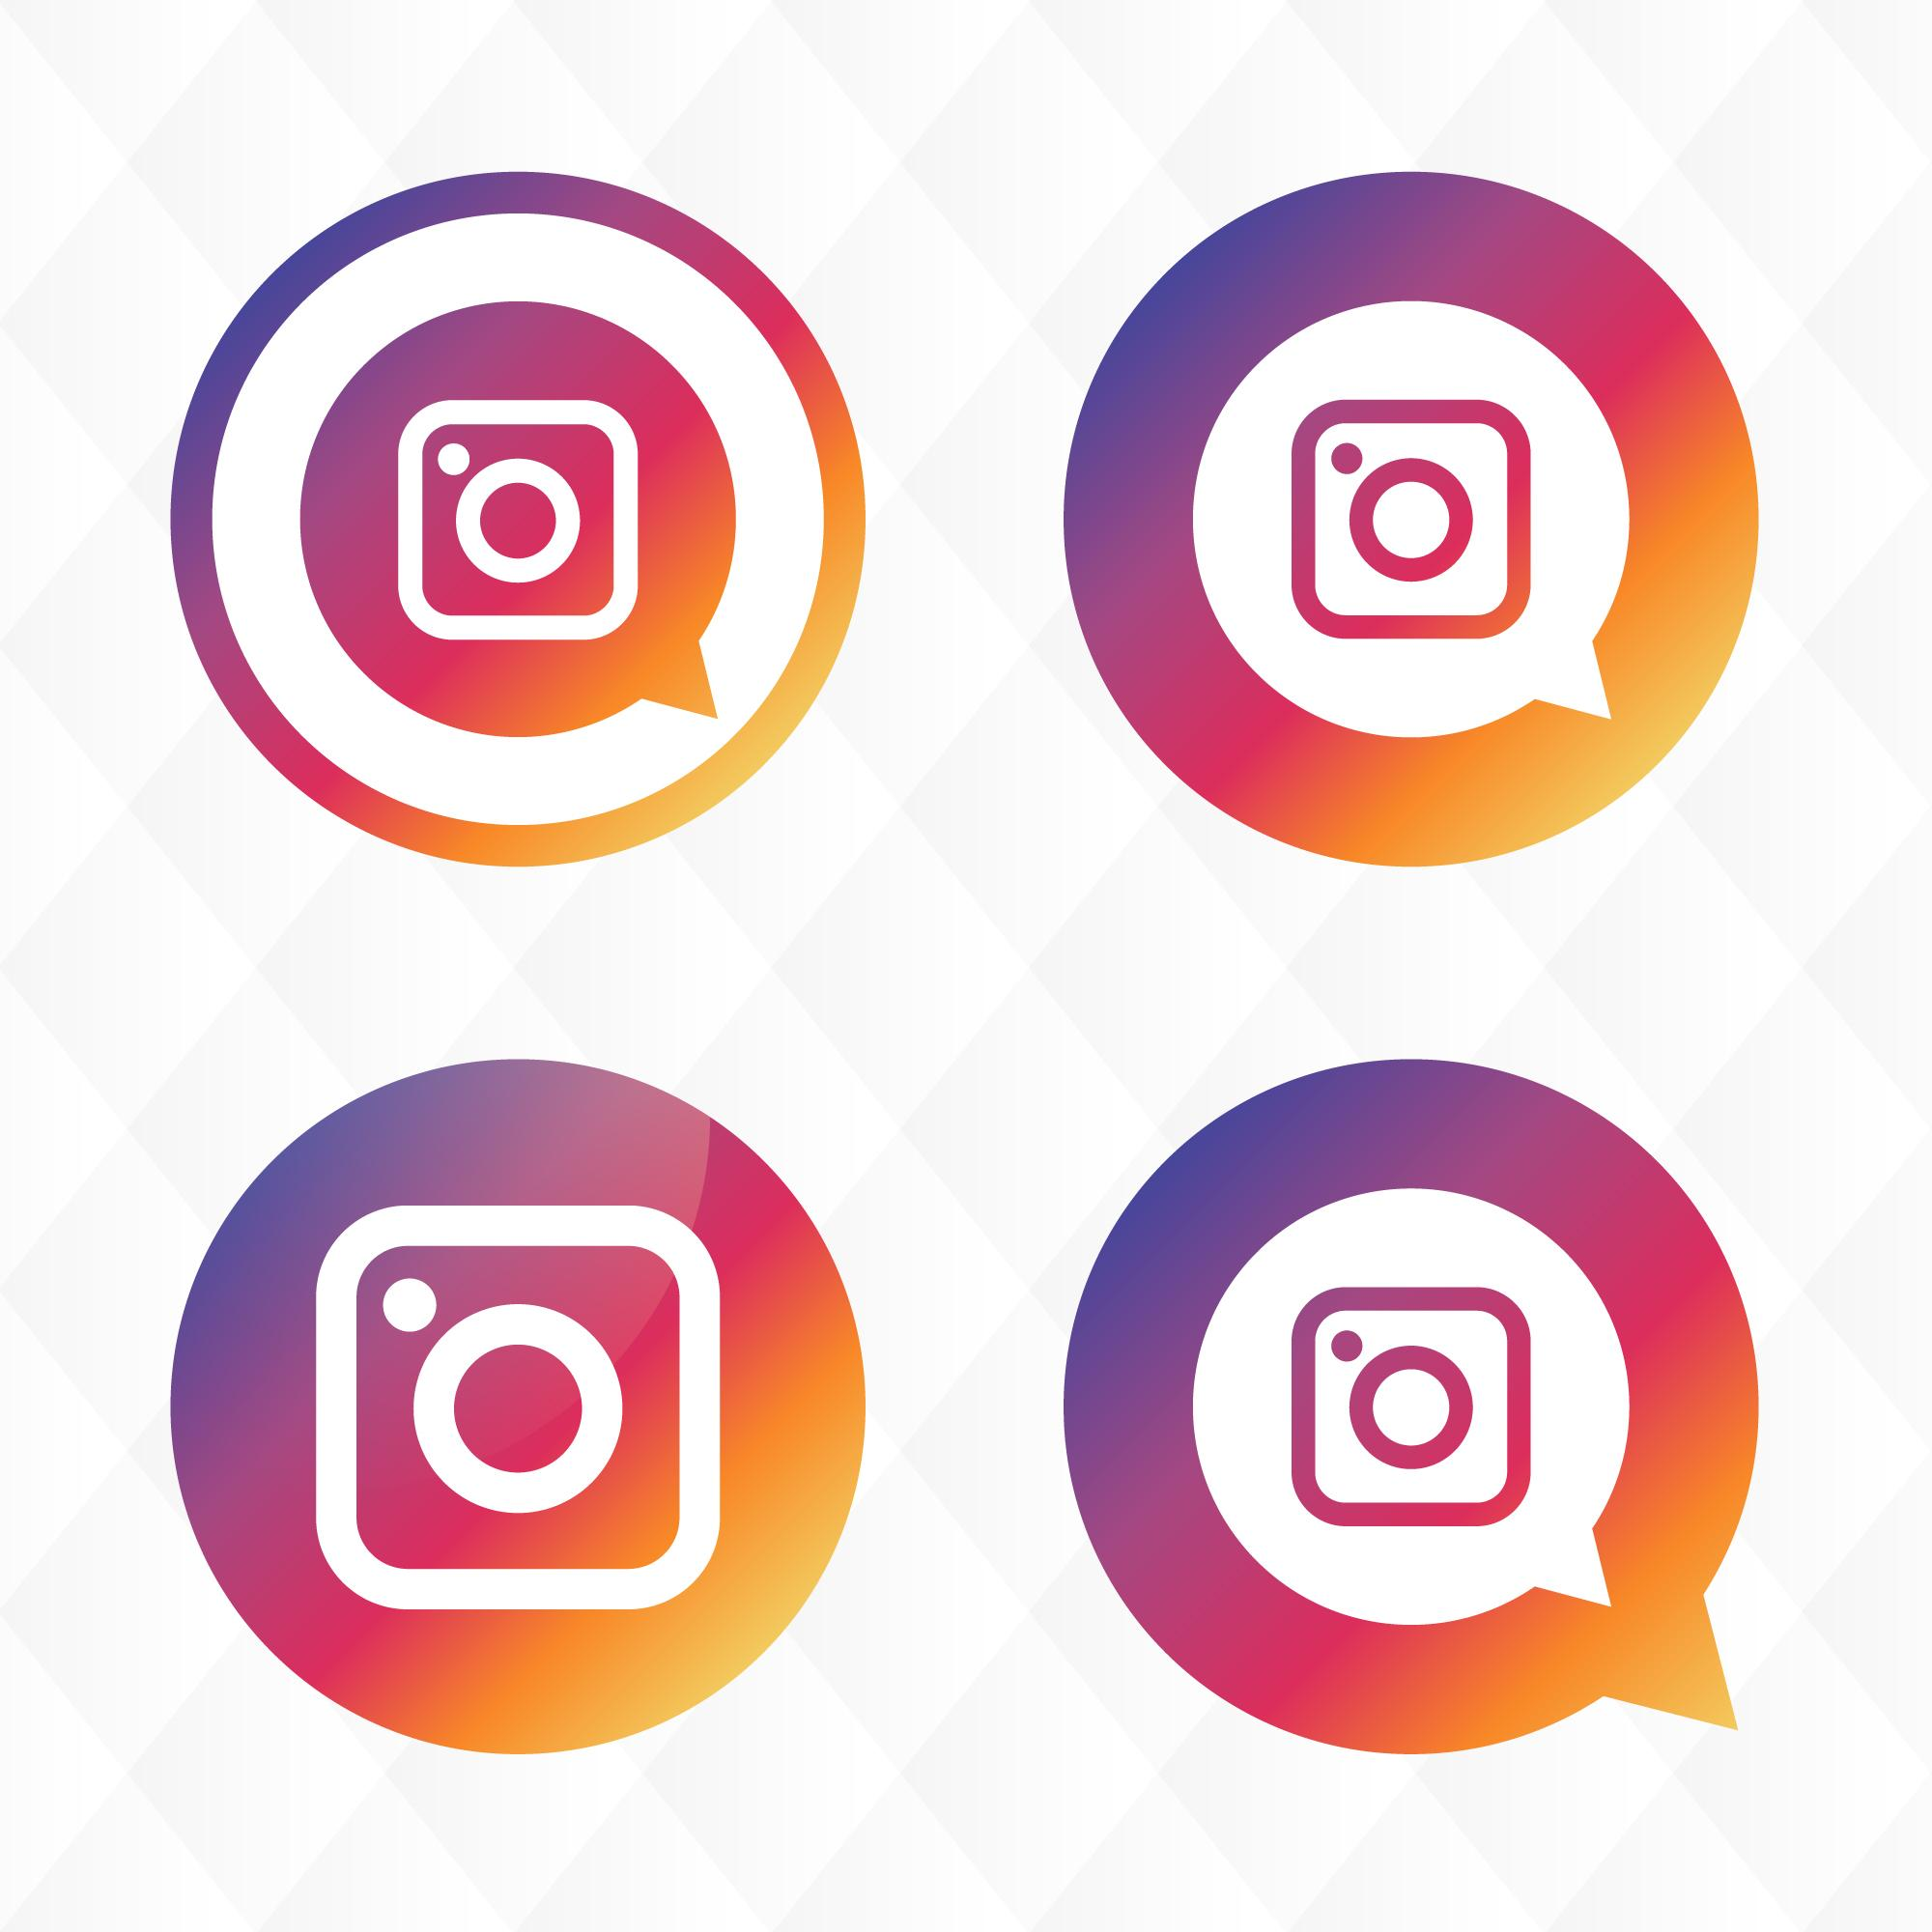 Top Circle Instagram Logo Vector Images » Free Vector Art.